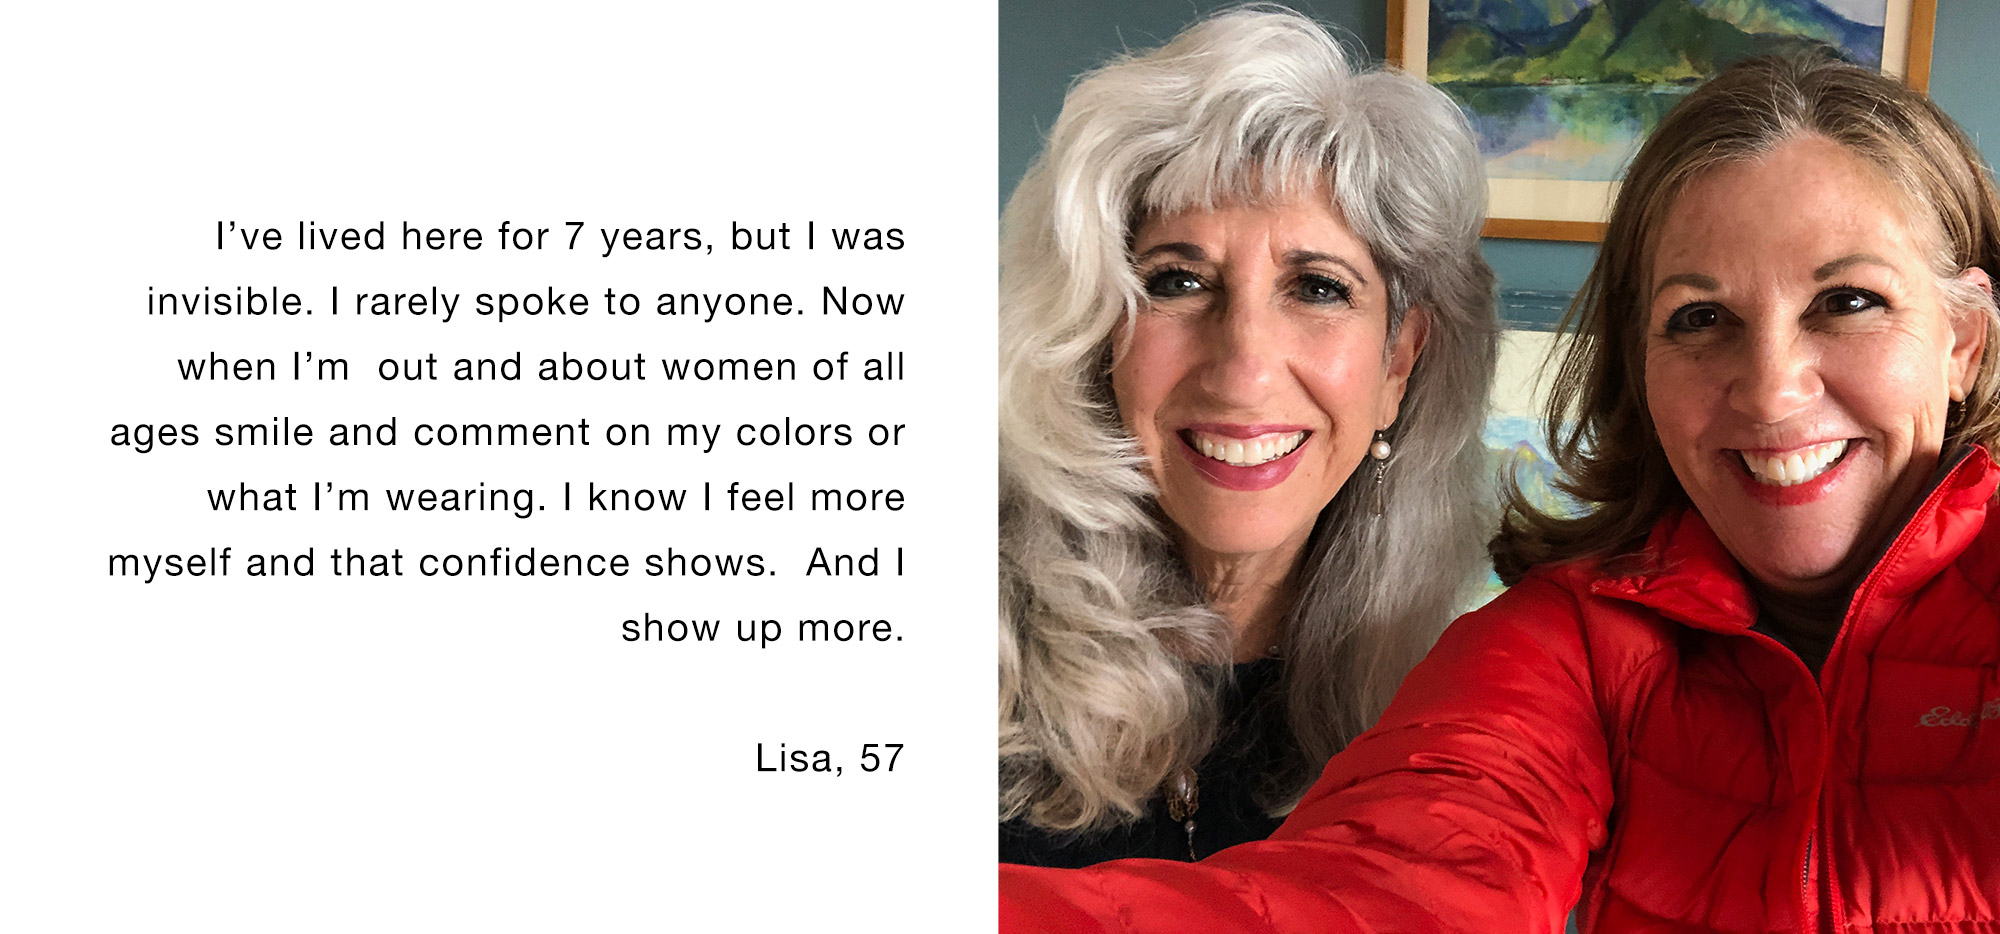 I've lived here for 7 years, but I was invisible. I rarely spoke to anyone. Now when I'm out and about women of all ages smile and comment on my colors or what I'm wearing. I know I feel more myself and that confidence shows. And I show up more Lisa, 57